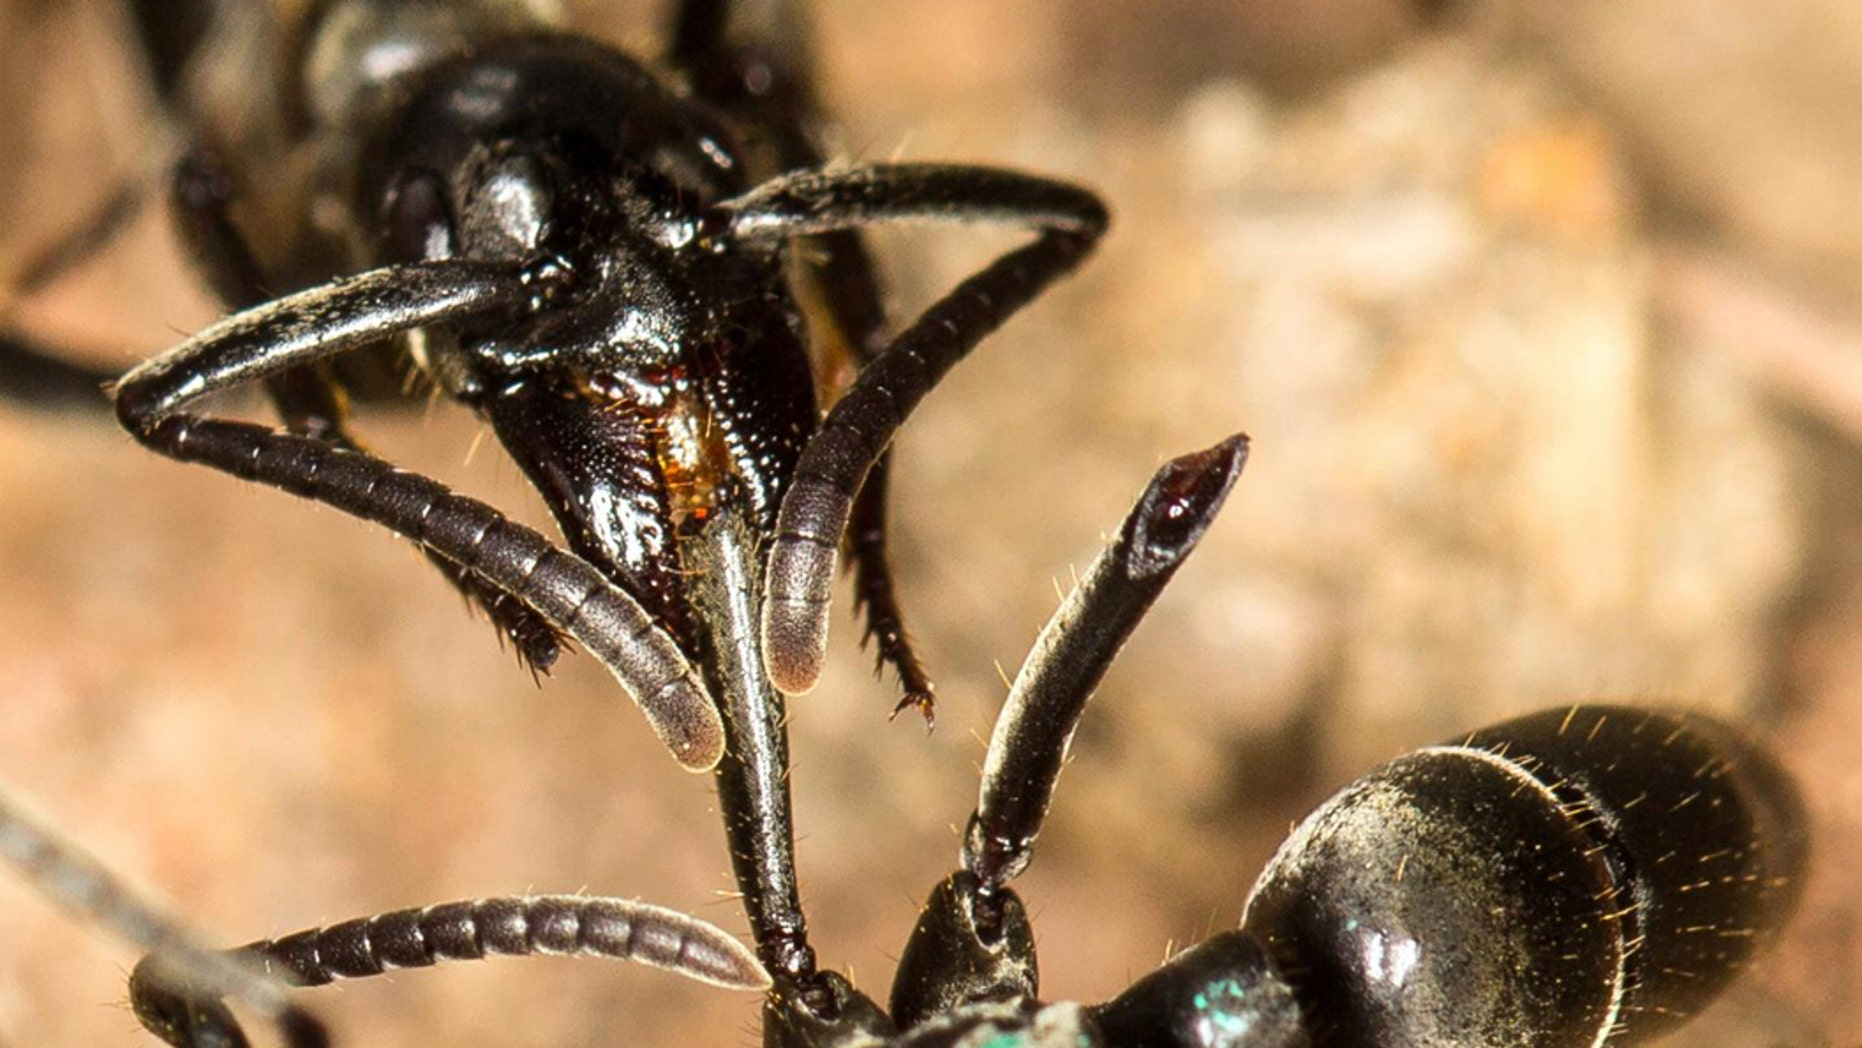 A Matabele ant treats the wounds of a mate whose limbs were bitten off during a fight with termite soldiers.  CREDIT (Photo: Erik T. Frank, University of Würzburg)